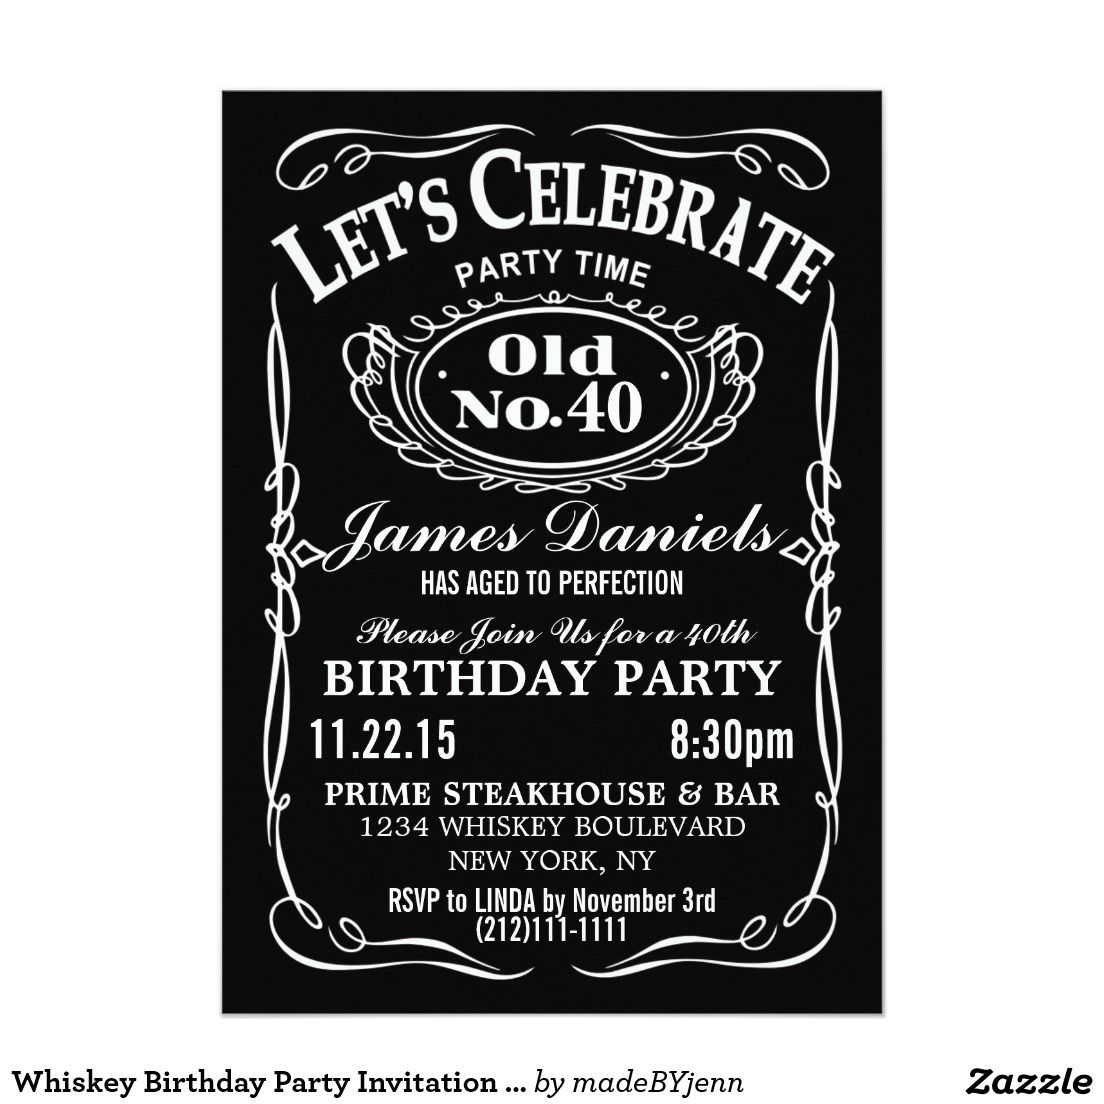 jack daniels whiskey birthday party invitation customizable daddy 39 s. Black Bedroom Furniture Sets. Home Design Ideas